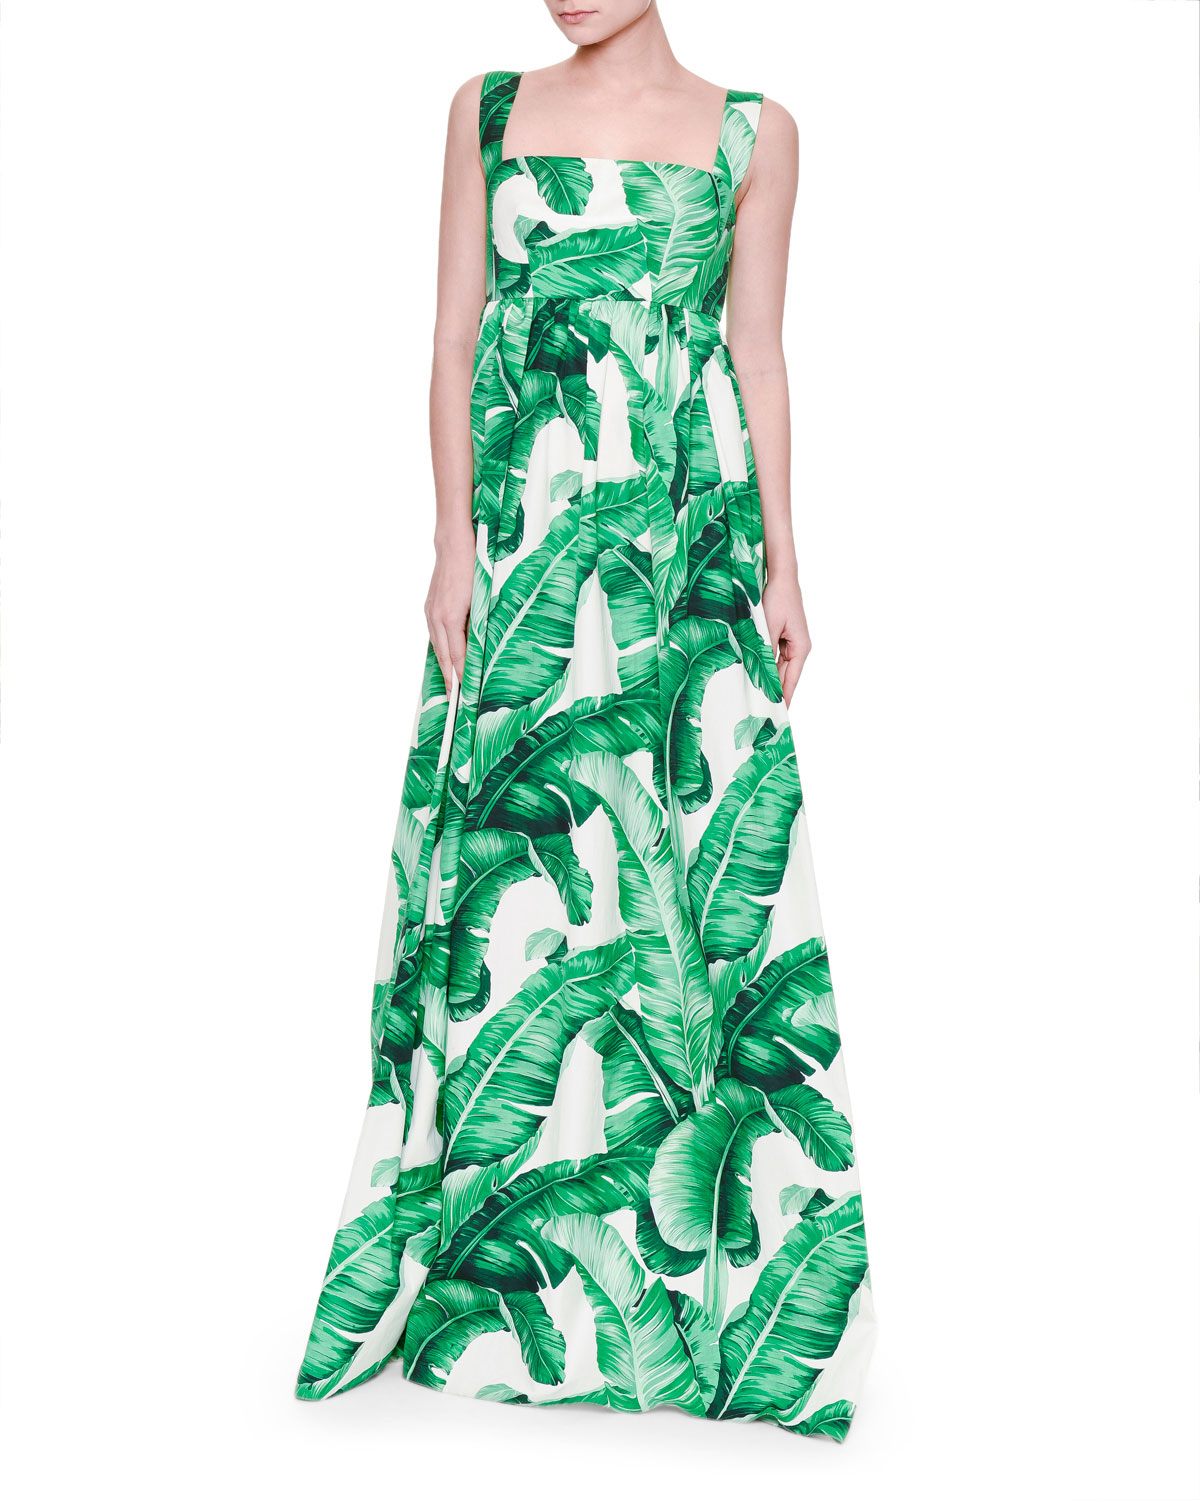 Banana Leaf-Print Maxi Tank Dress, White/Green